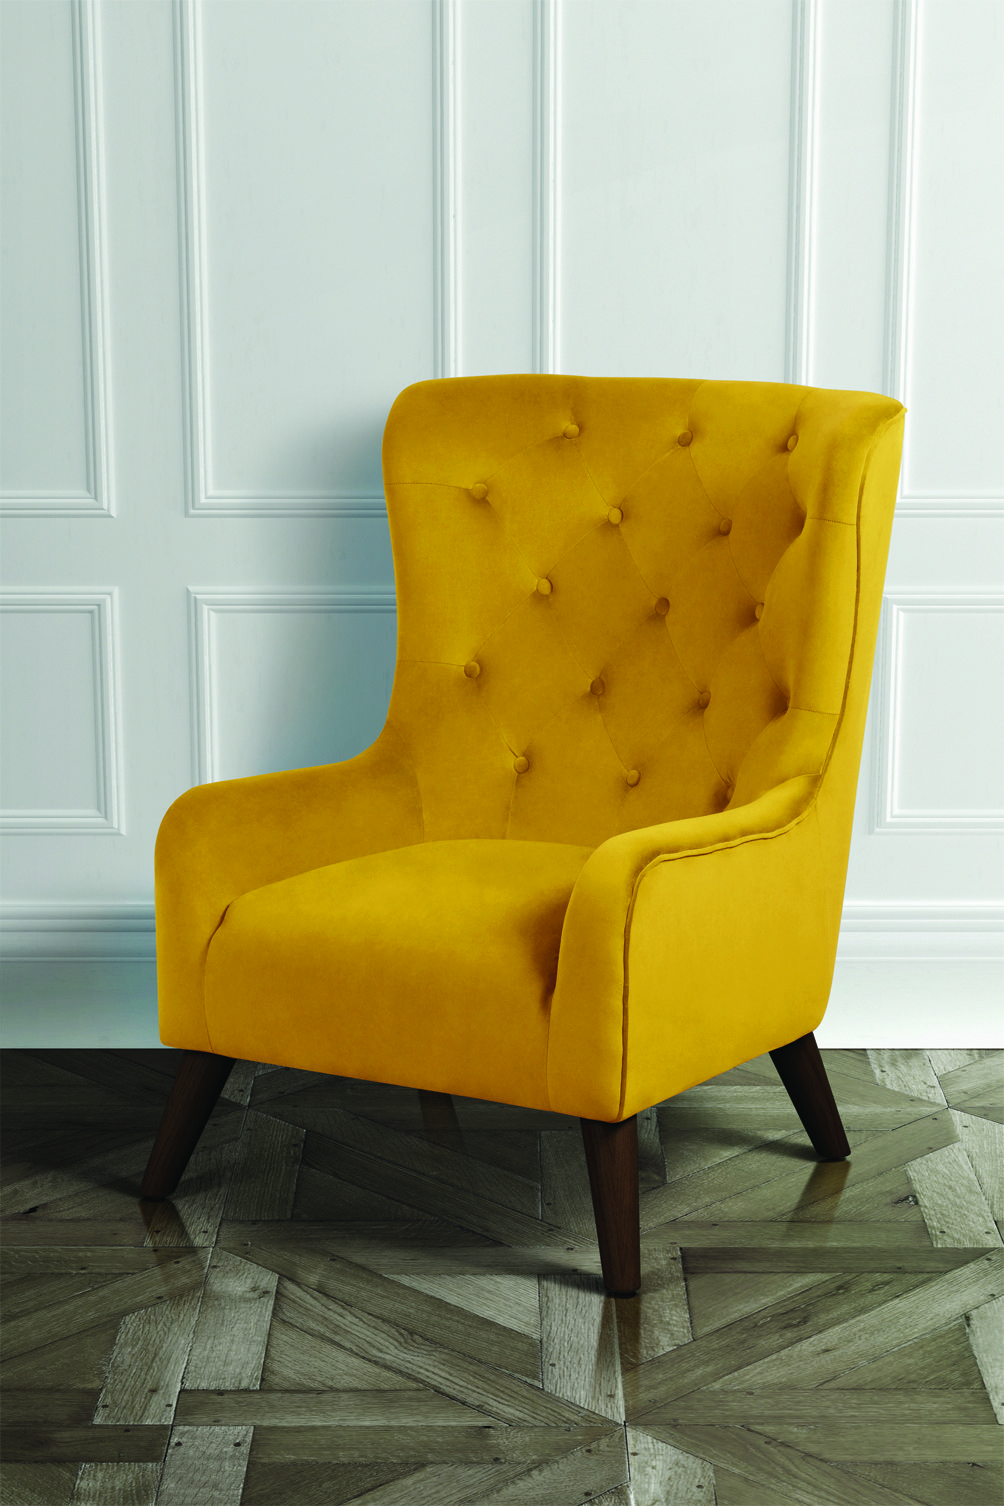 Dorchester Lounge Armchair, Mustard Yellow | Living Room Within Dorcaster Barrel Chairs (View 14 of 15)